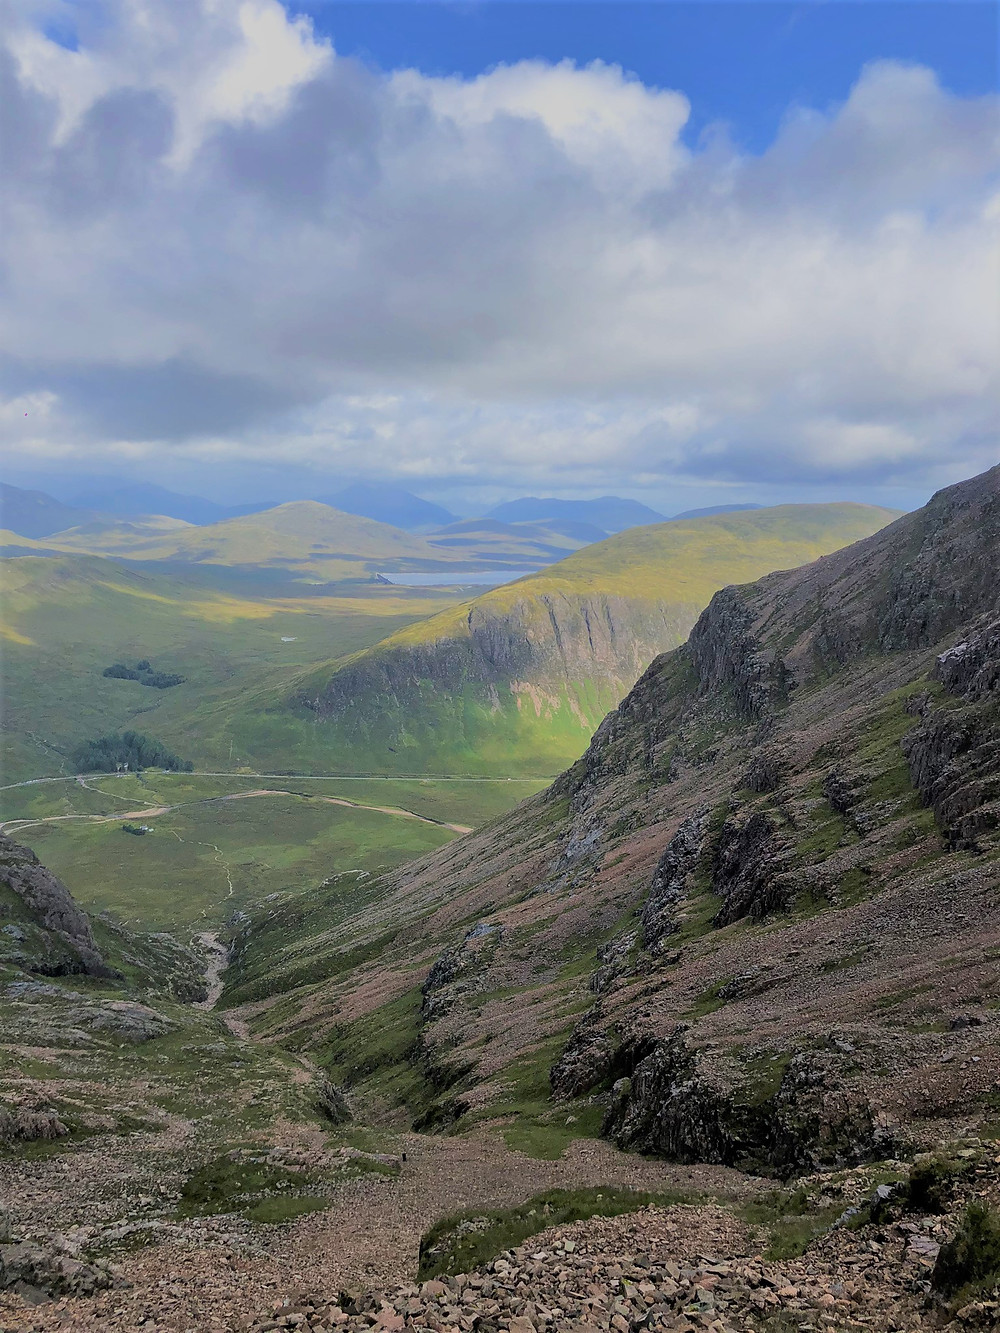 Looking down Coire na Tulaich to our starting point on the hike to the summit of Buachaille Etive Mòr in the Scottish Highlands